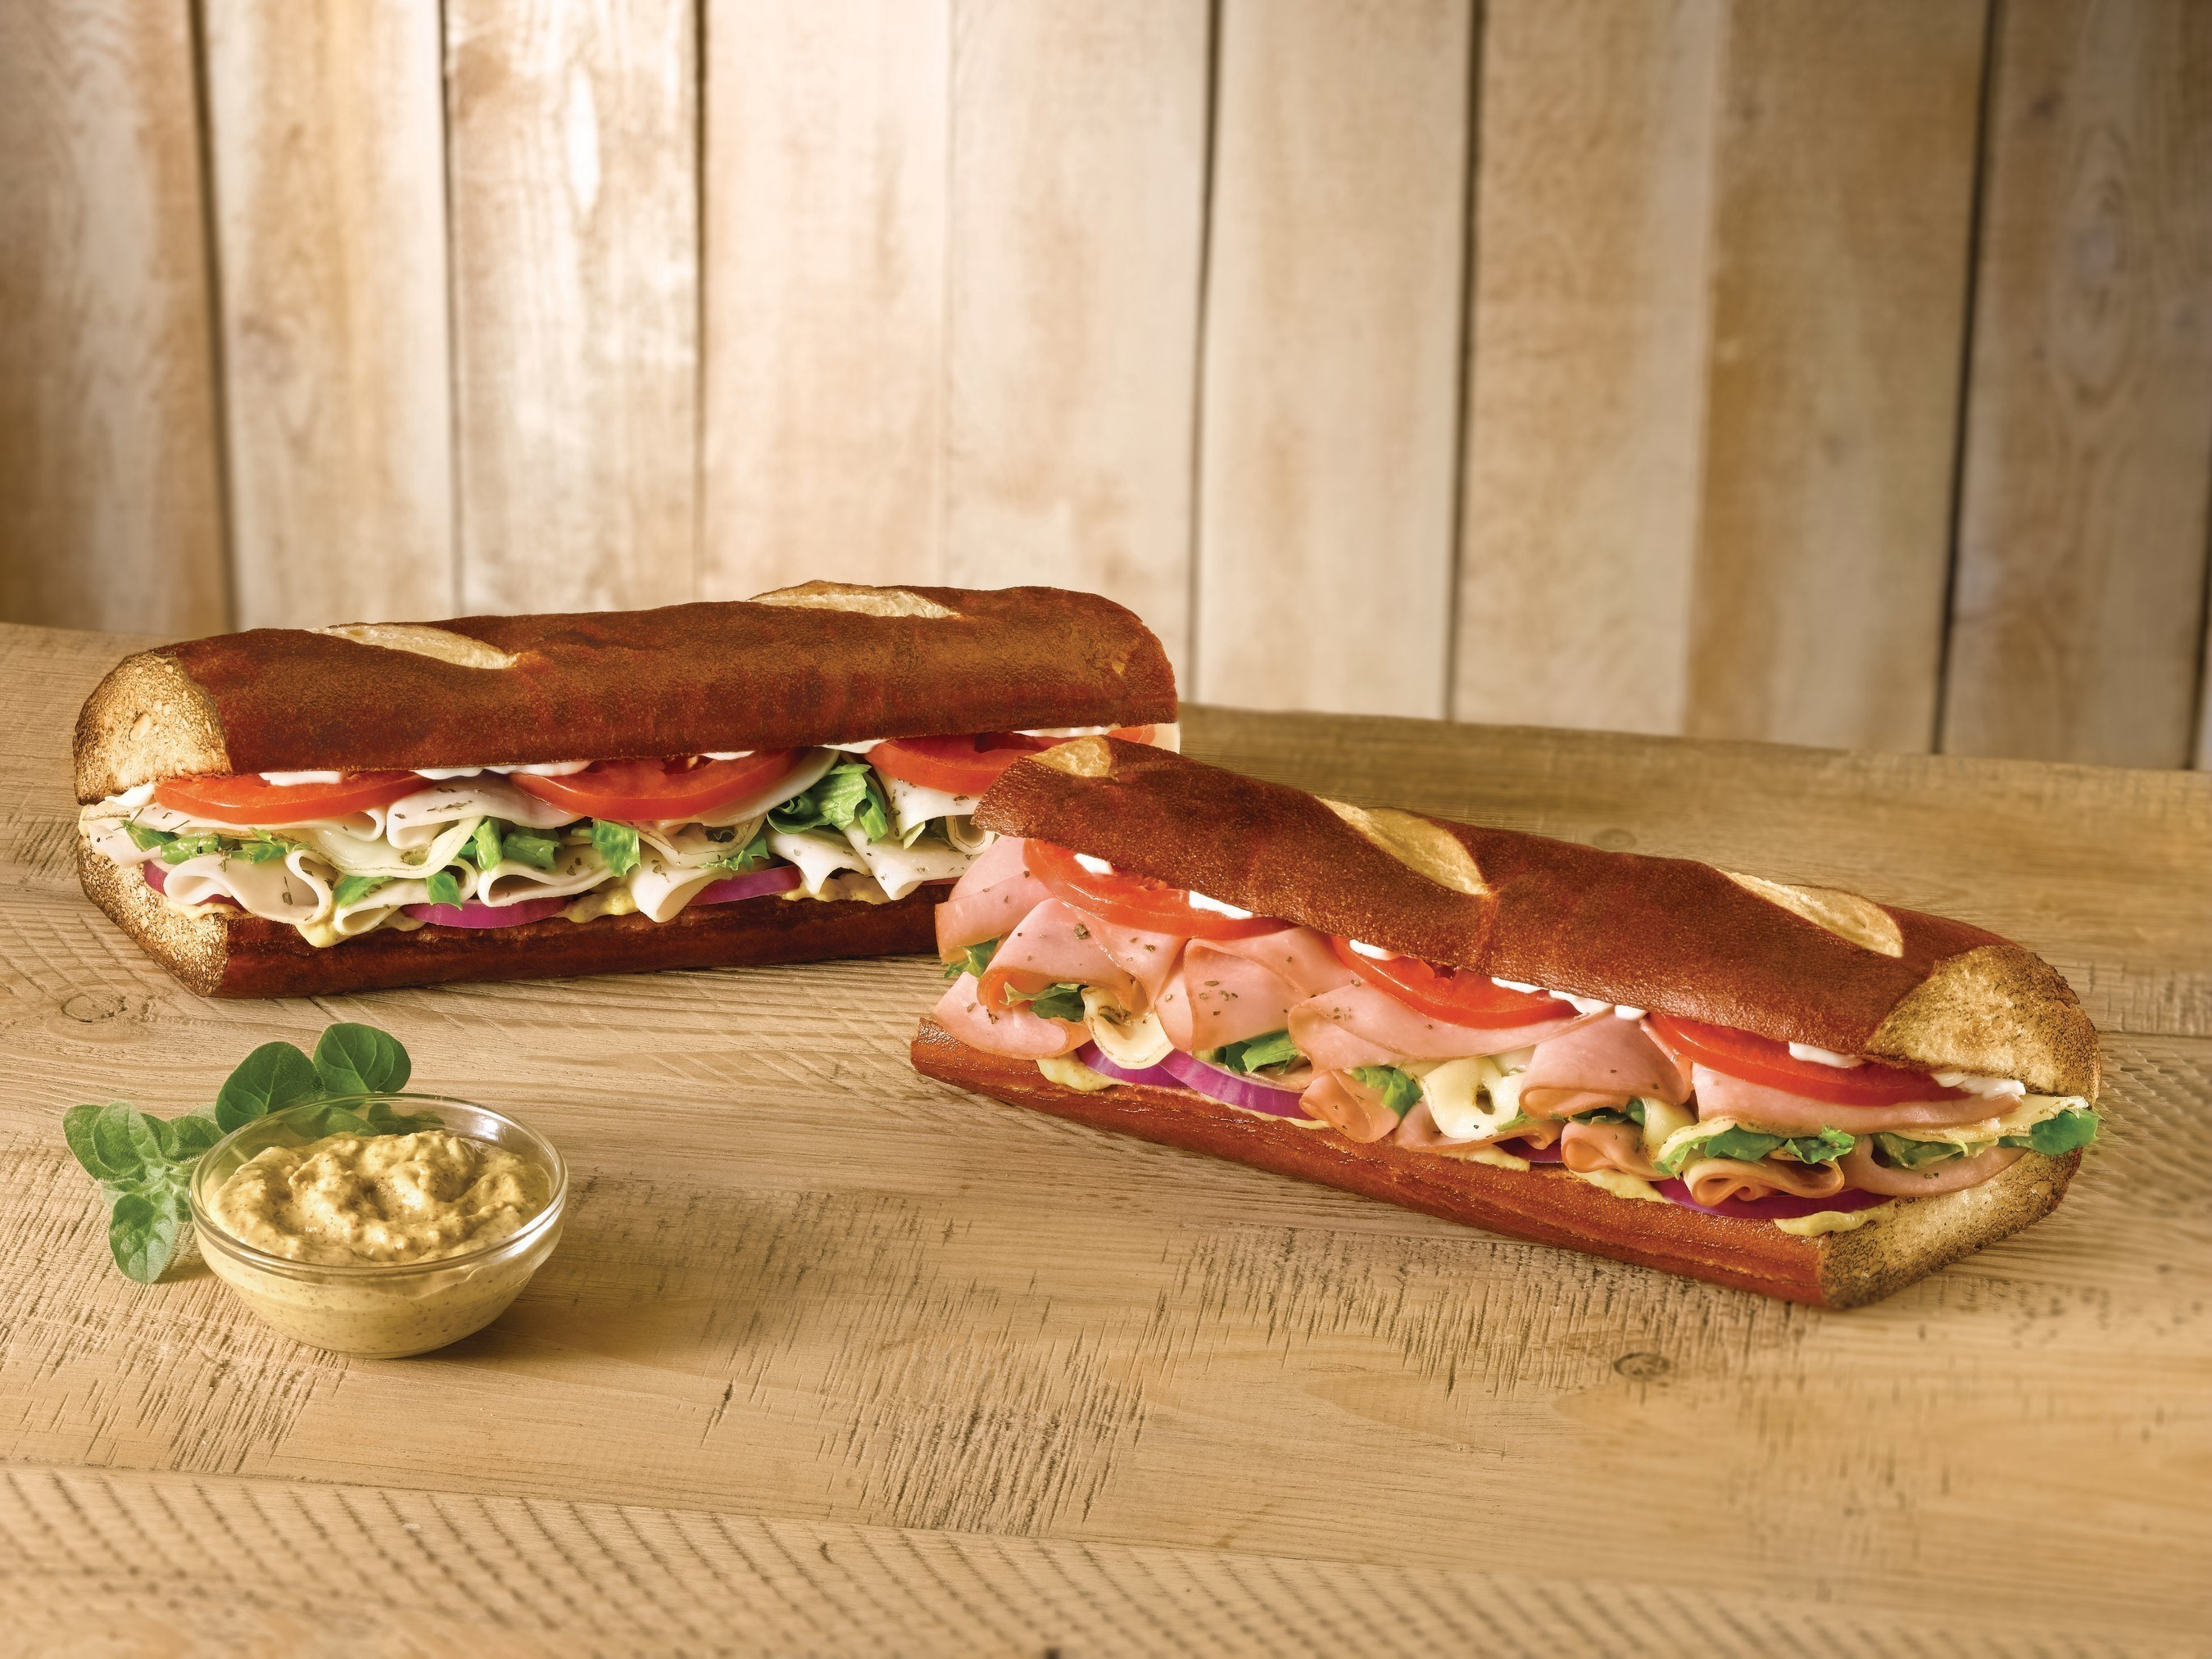 Quiznos Launches New Pretzel Bread Menu Offerings Ham On And Turkey